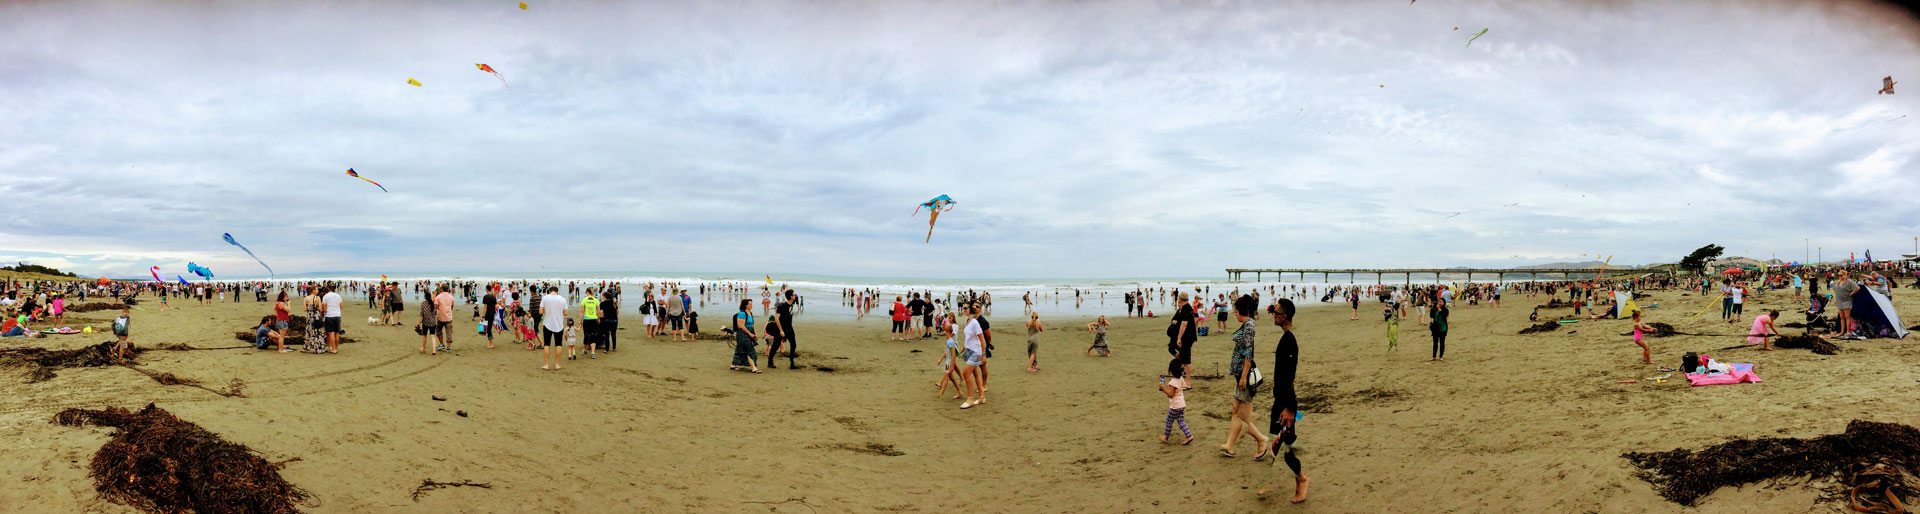 Crowds on New Brighton beach for Kite Day (2017)